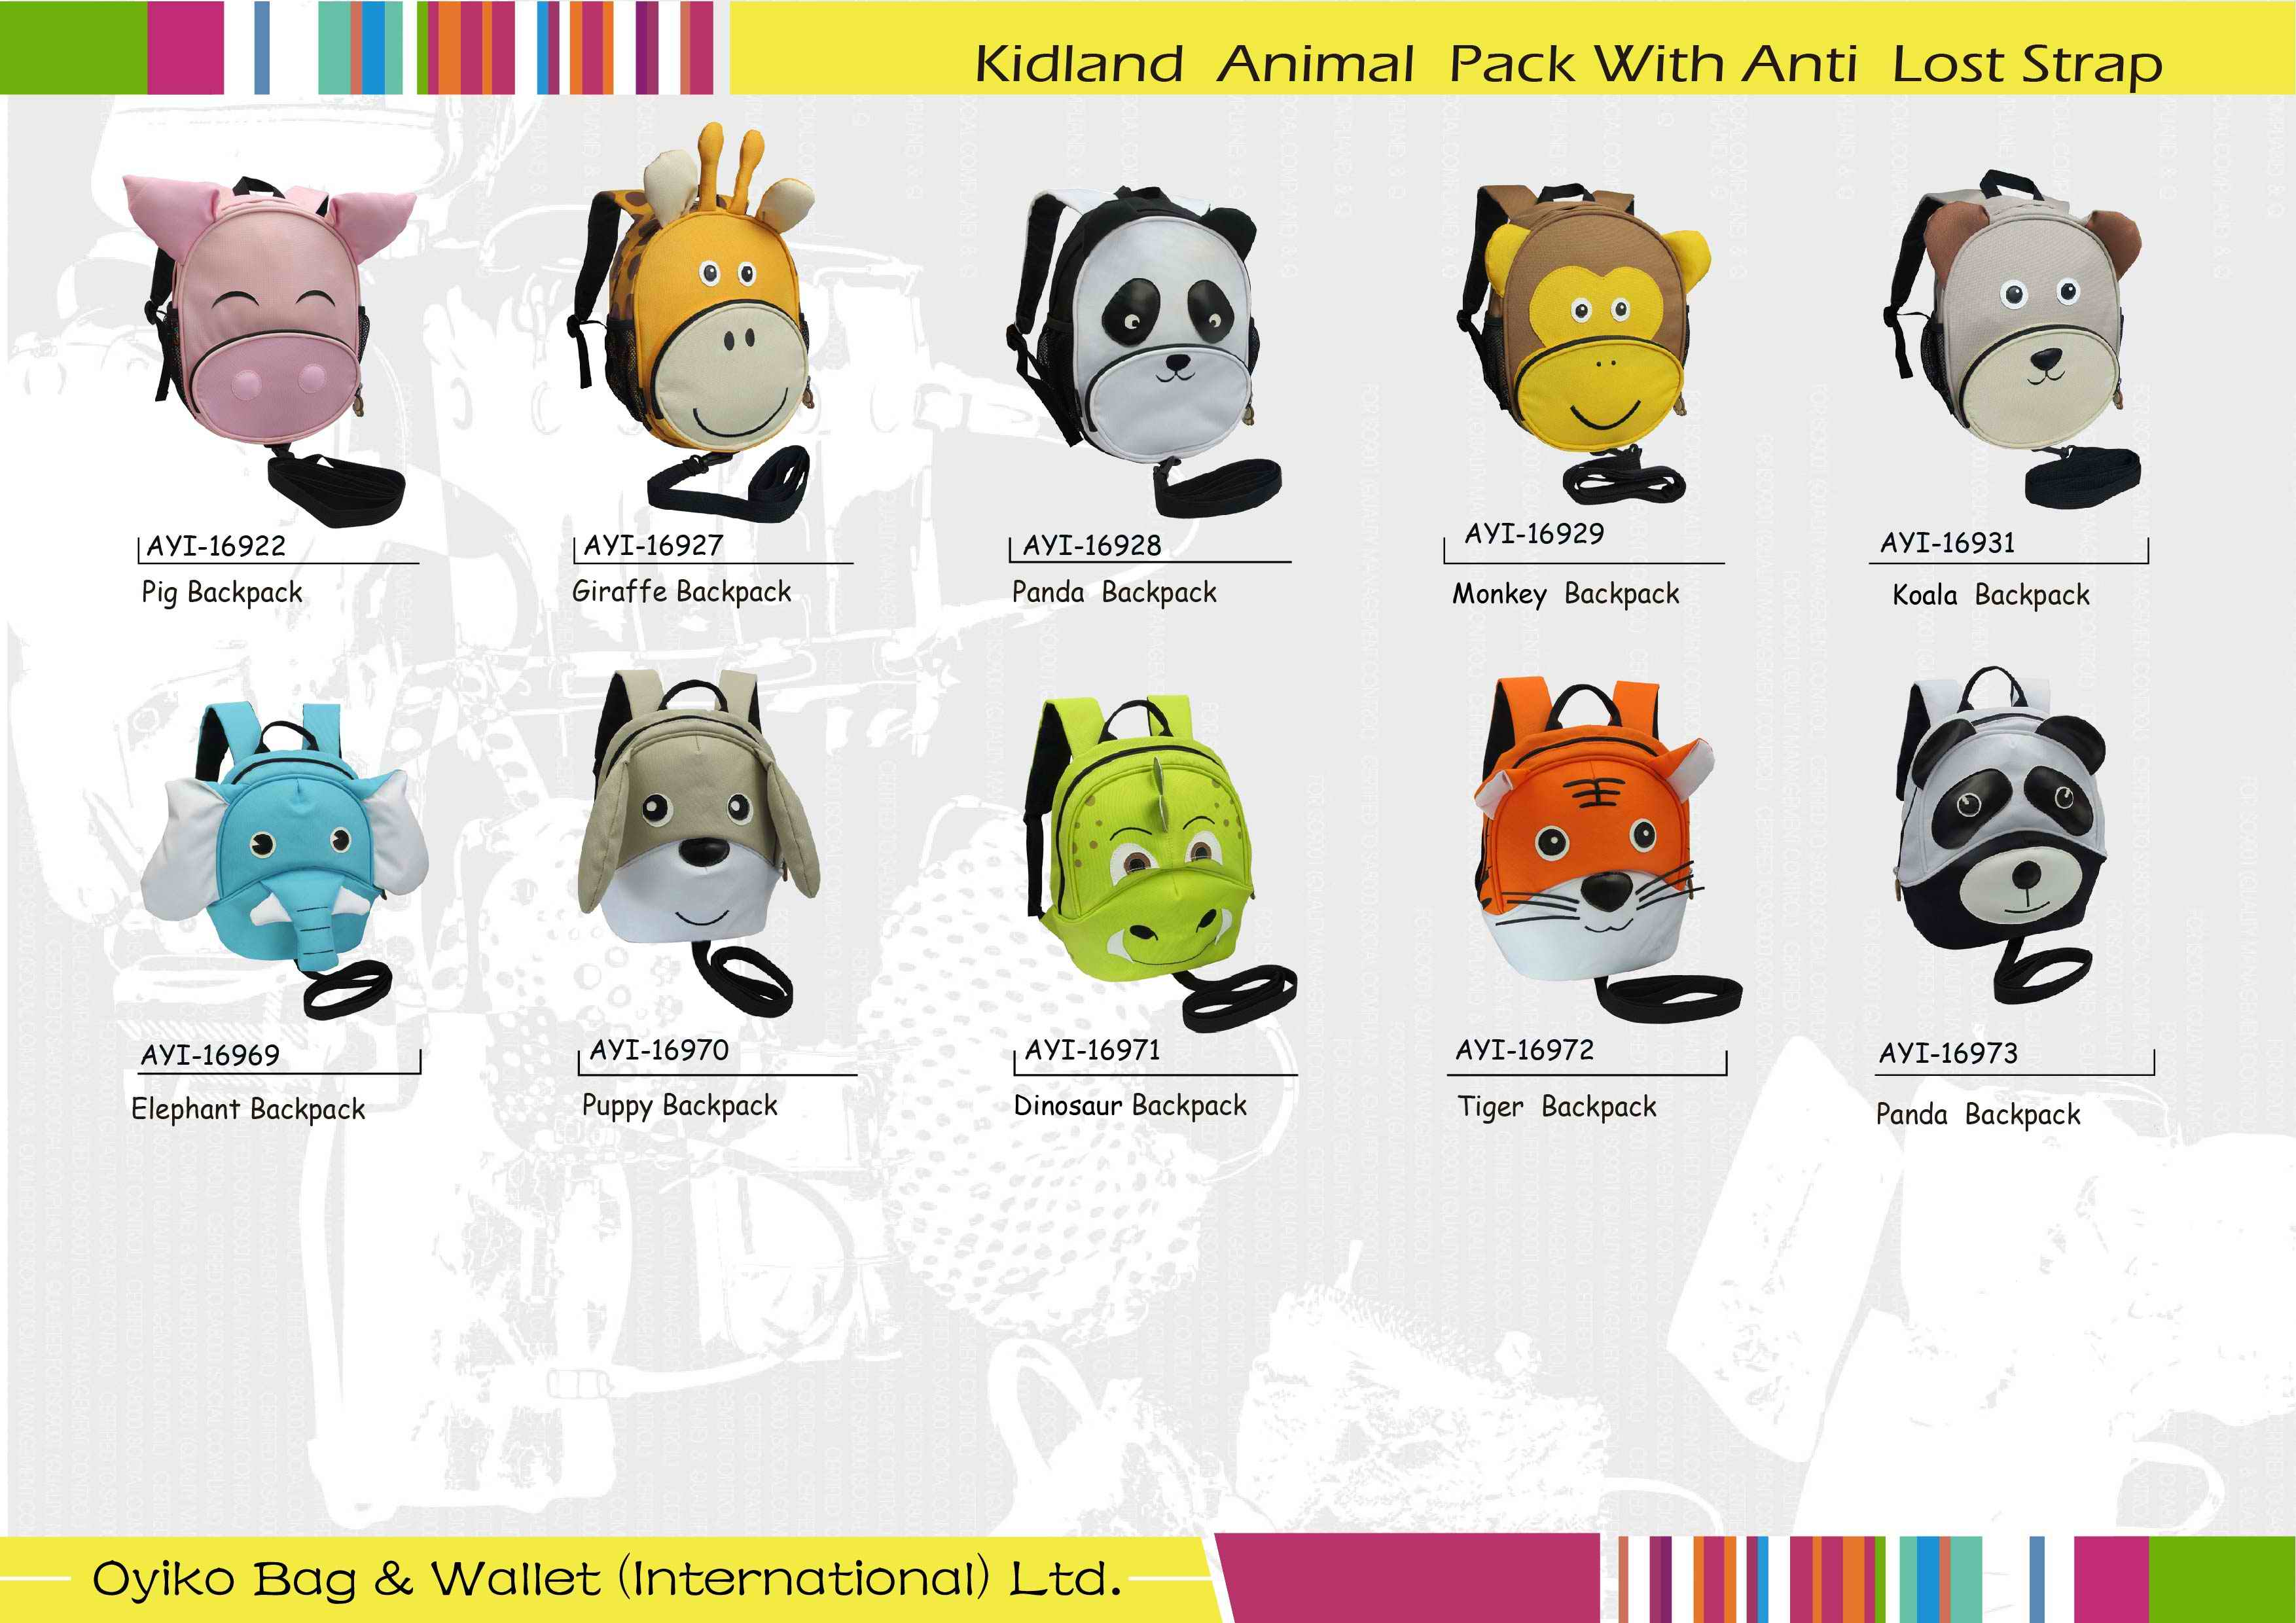 Kidland Animal Pack With Anti Lost Strap.jpg